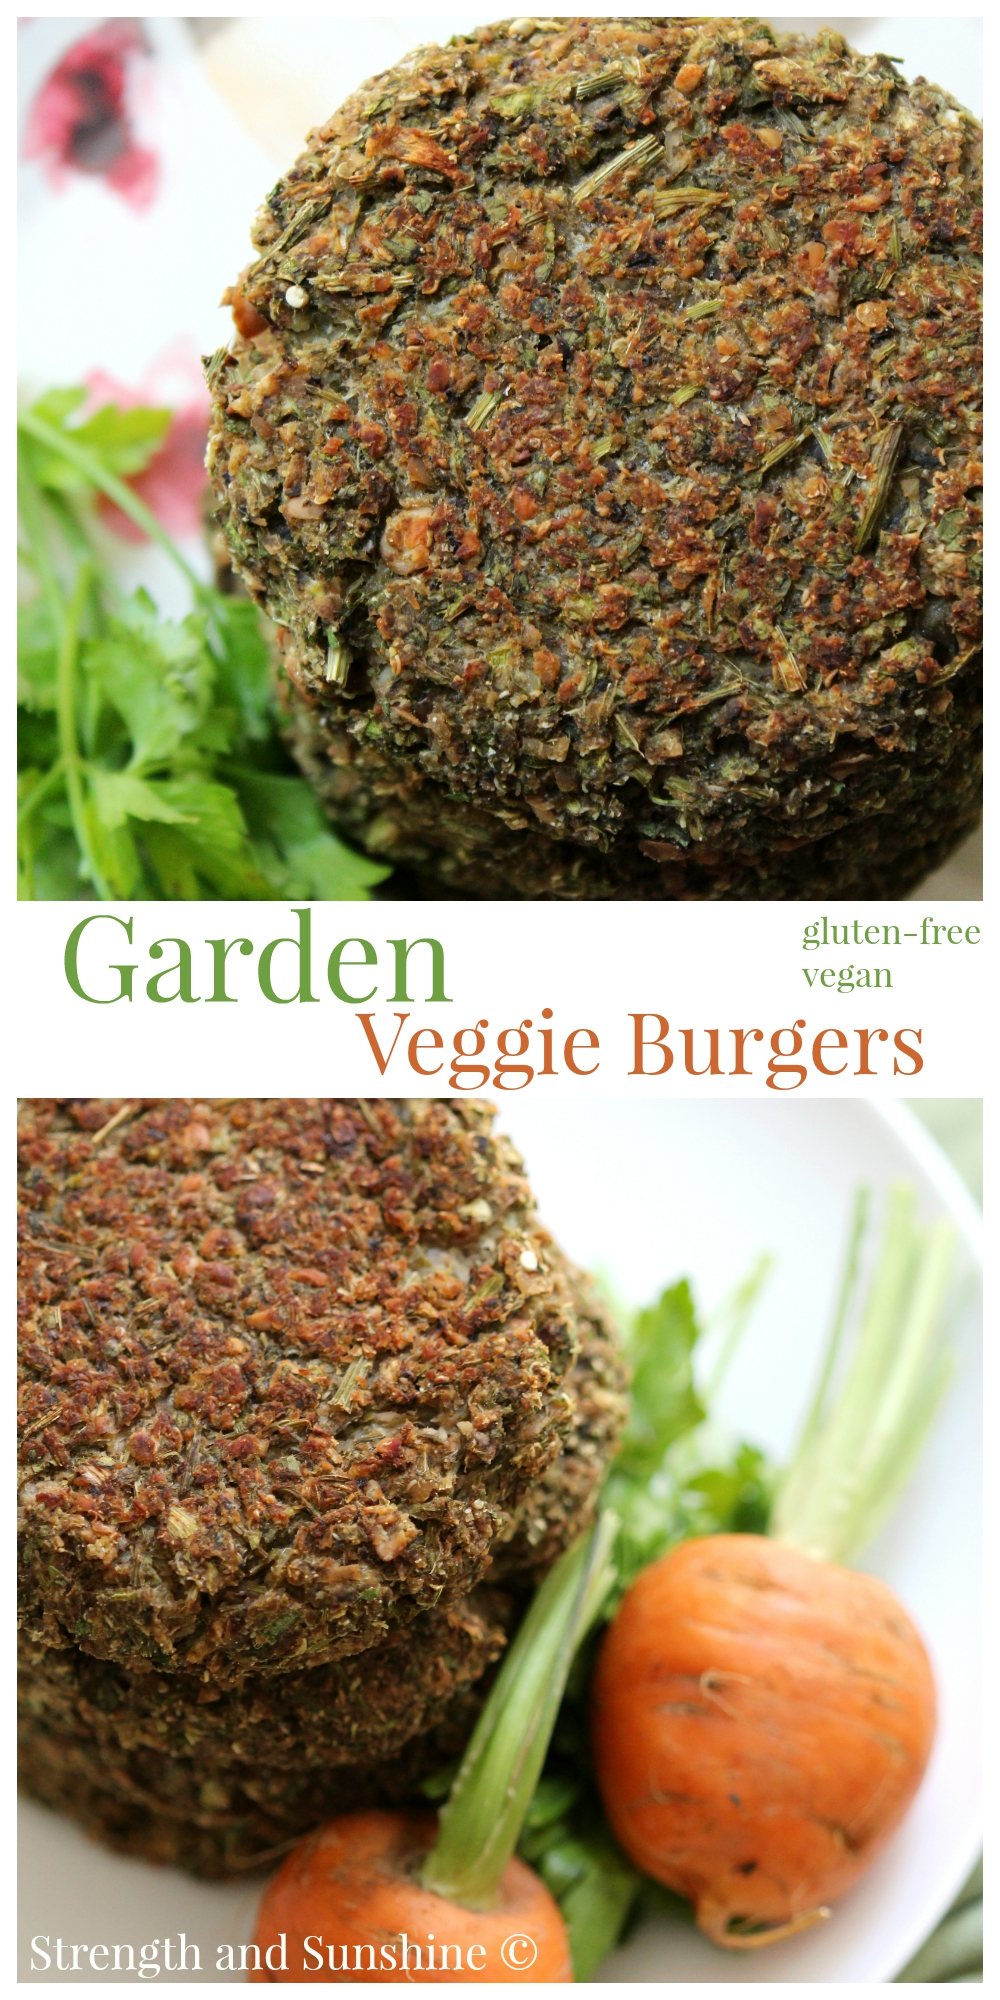 Garden Veggie Burgers | Strength and Sunshine @RebeccaGF666 Taking full advantage of the fresh summer bounty, these healthy, moist, gluten-free, vegan garden veggie burgers will have you wishing summer stayed forever..